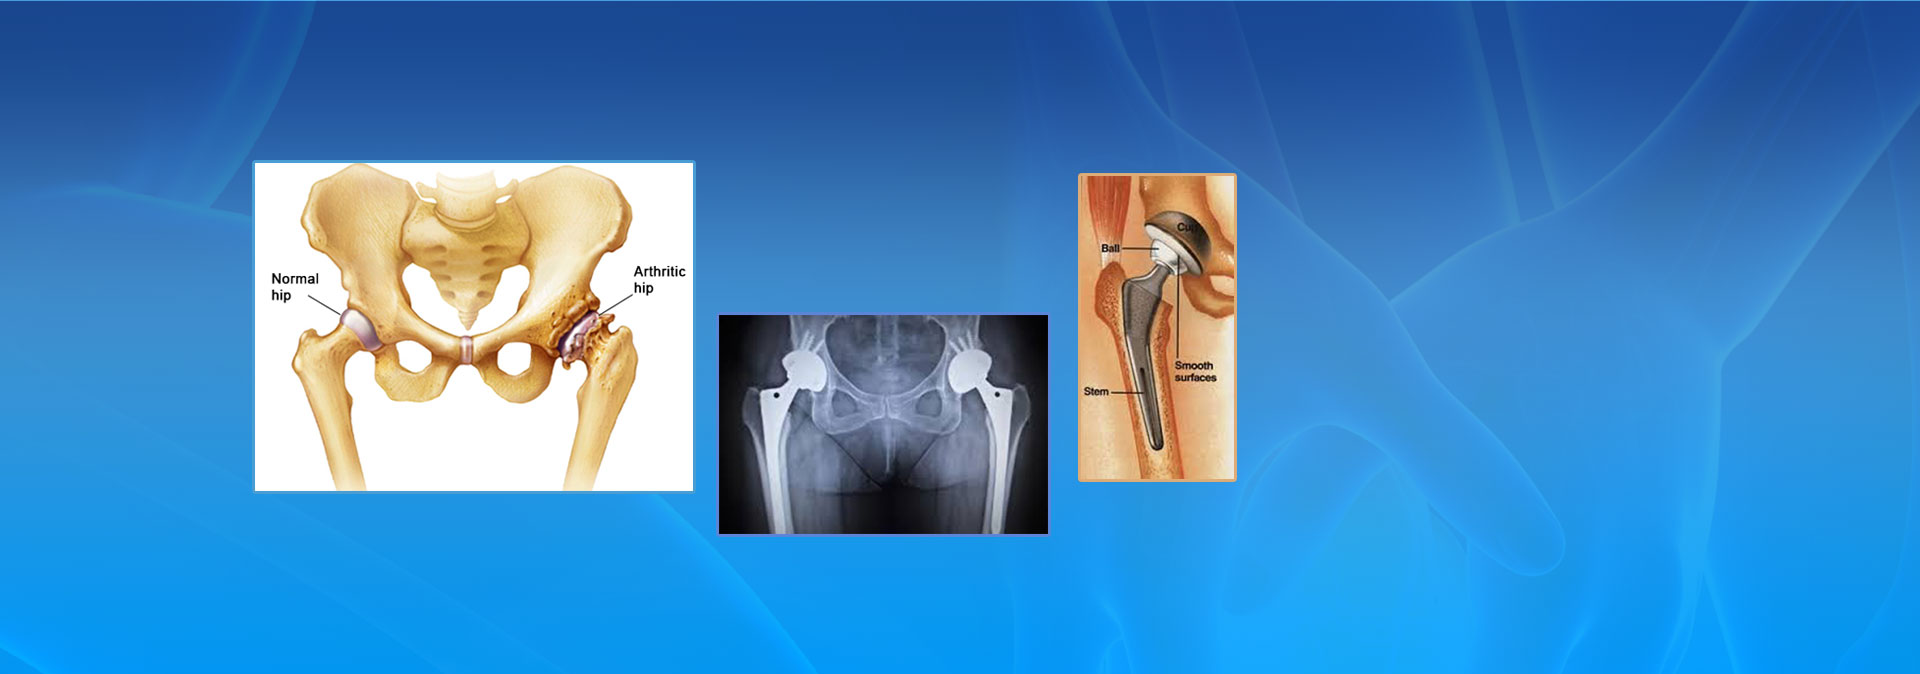 total hip replacement image